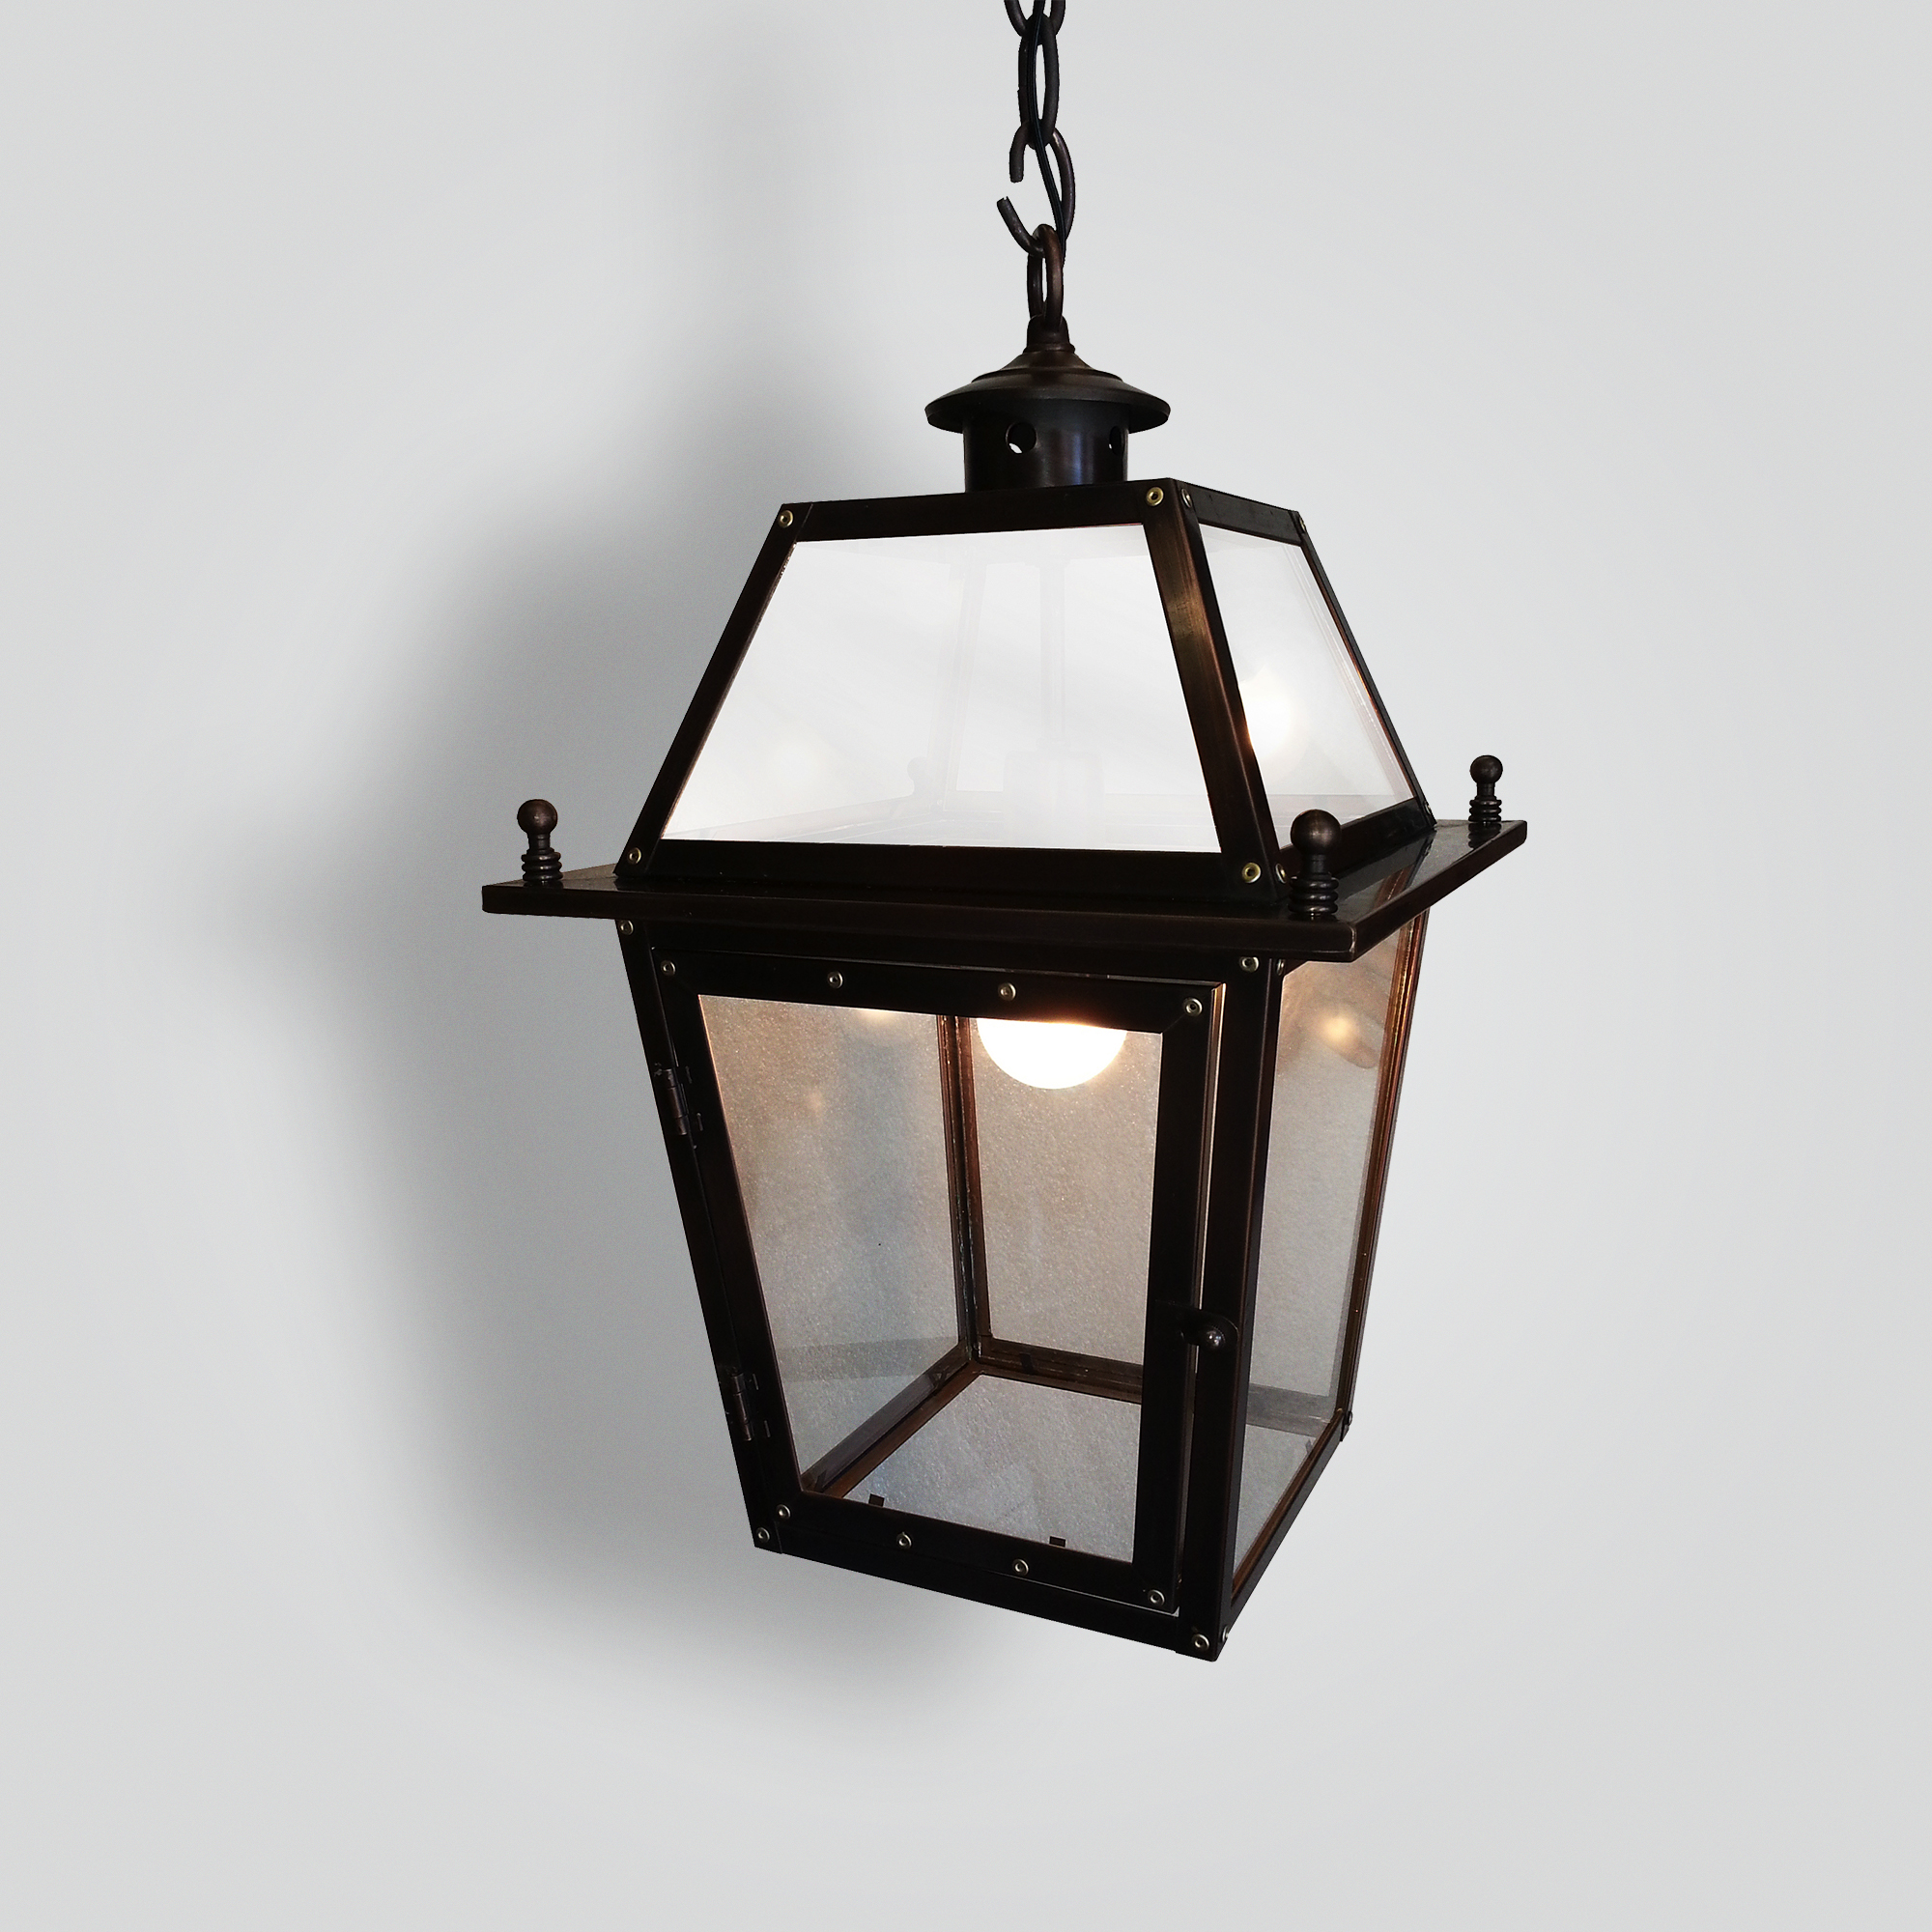 551-mb1-br-h-sh Copper Bronze Carriage Hanging Lantern – ADG Lighting Collection